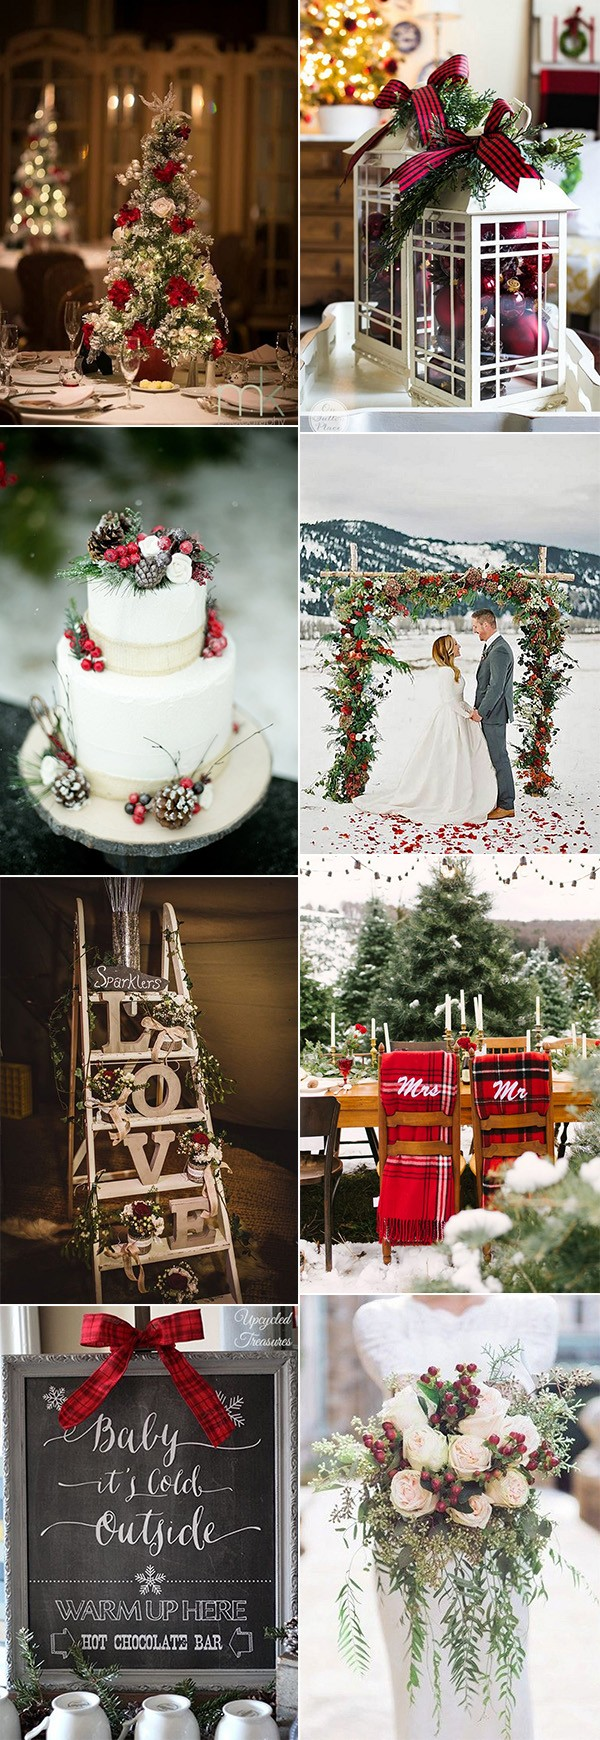 Winter Wonderland Christmas Wedding Ideas.18 Stunning Christmas Themed Winter Wedding Ideas